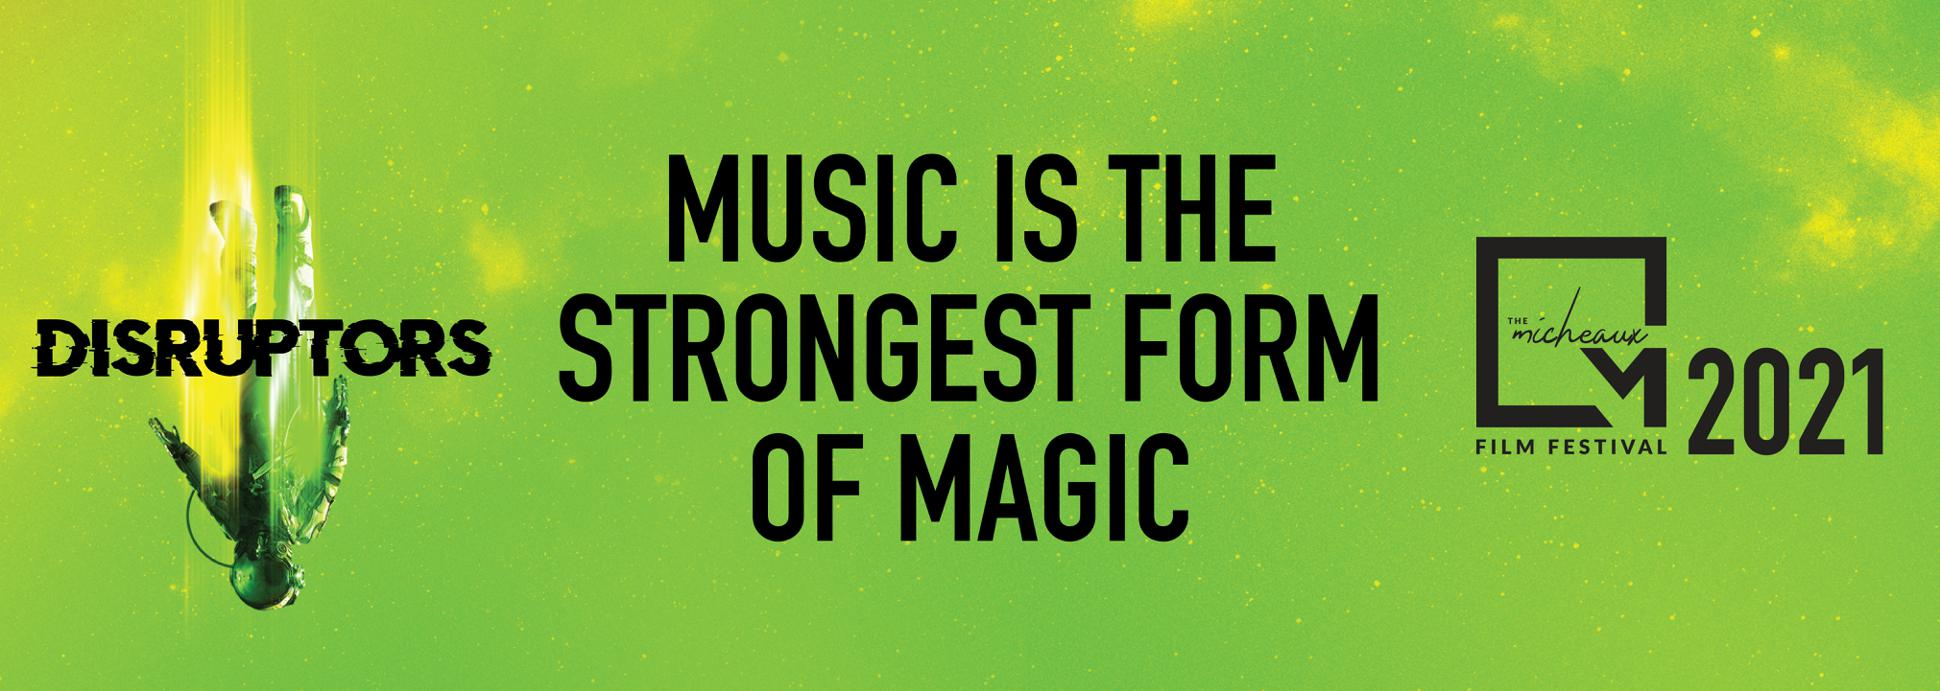 Music is the Strongest Form of Magic  (Music Videos)